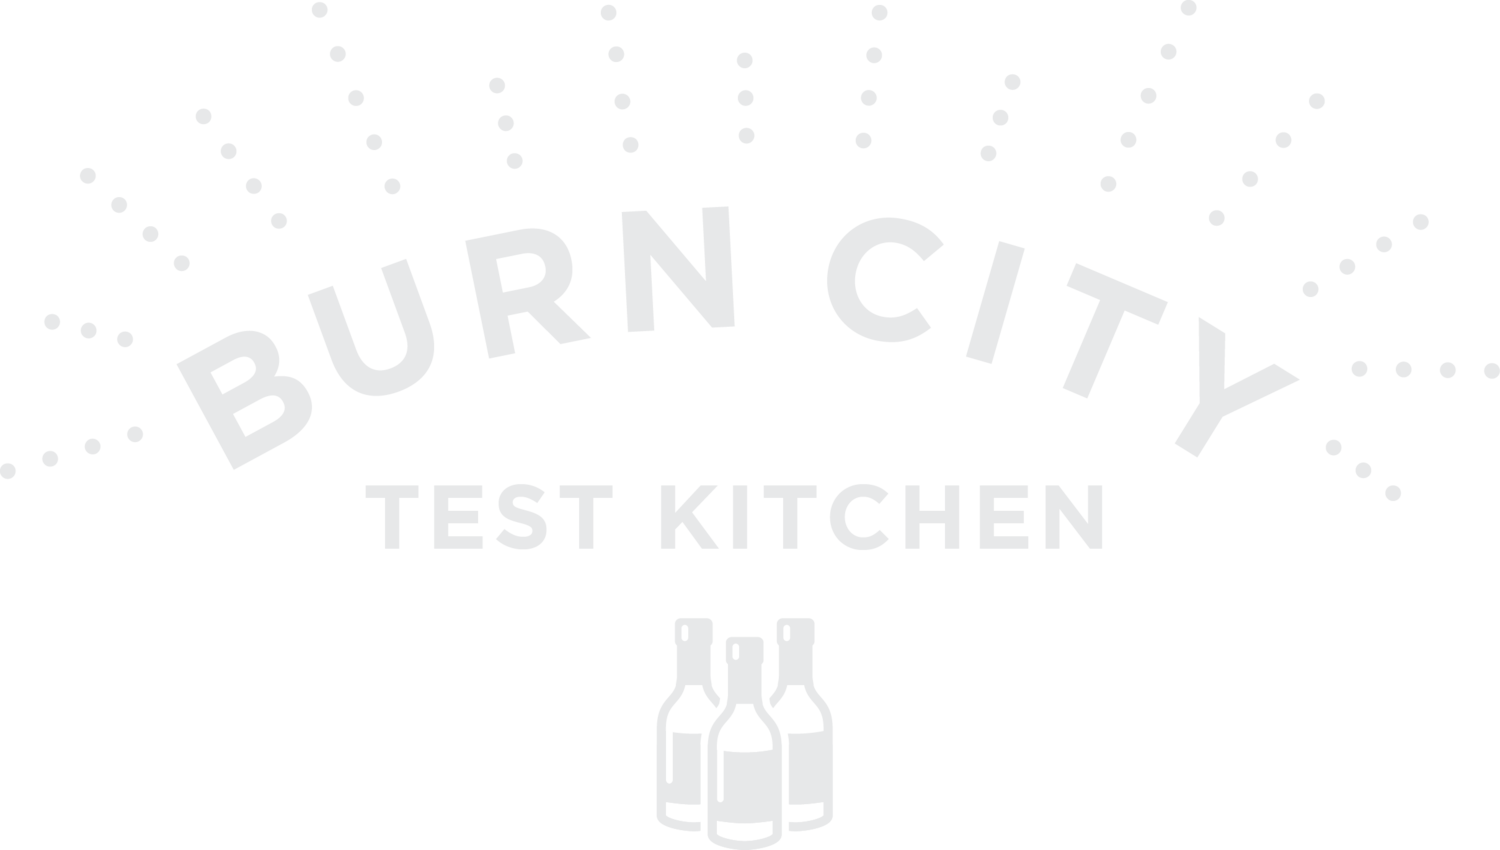 Burn City Test Kitchen